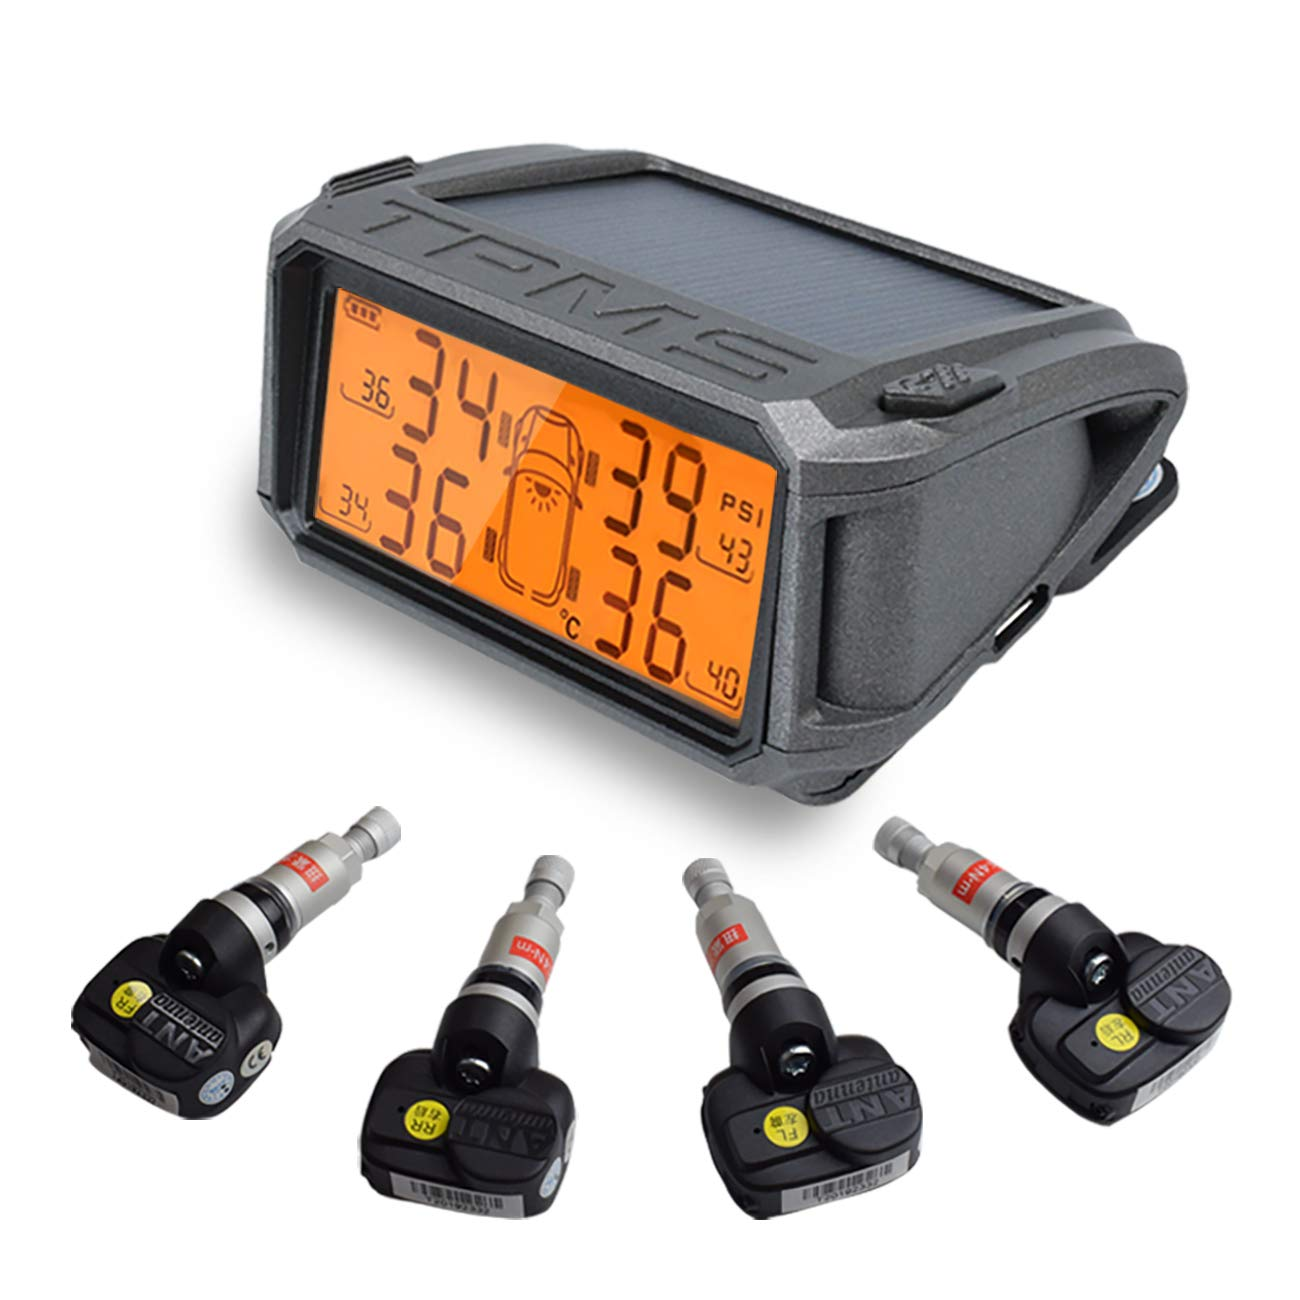 DEEWAZ TPMS Tire Pressure Monitor Solar Power Charging Real-time Display Auto Alarm 4 Tires' Pressure Temperature TPMS - Yellow Backlight LCD